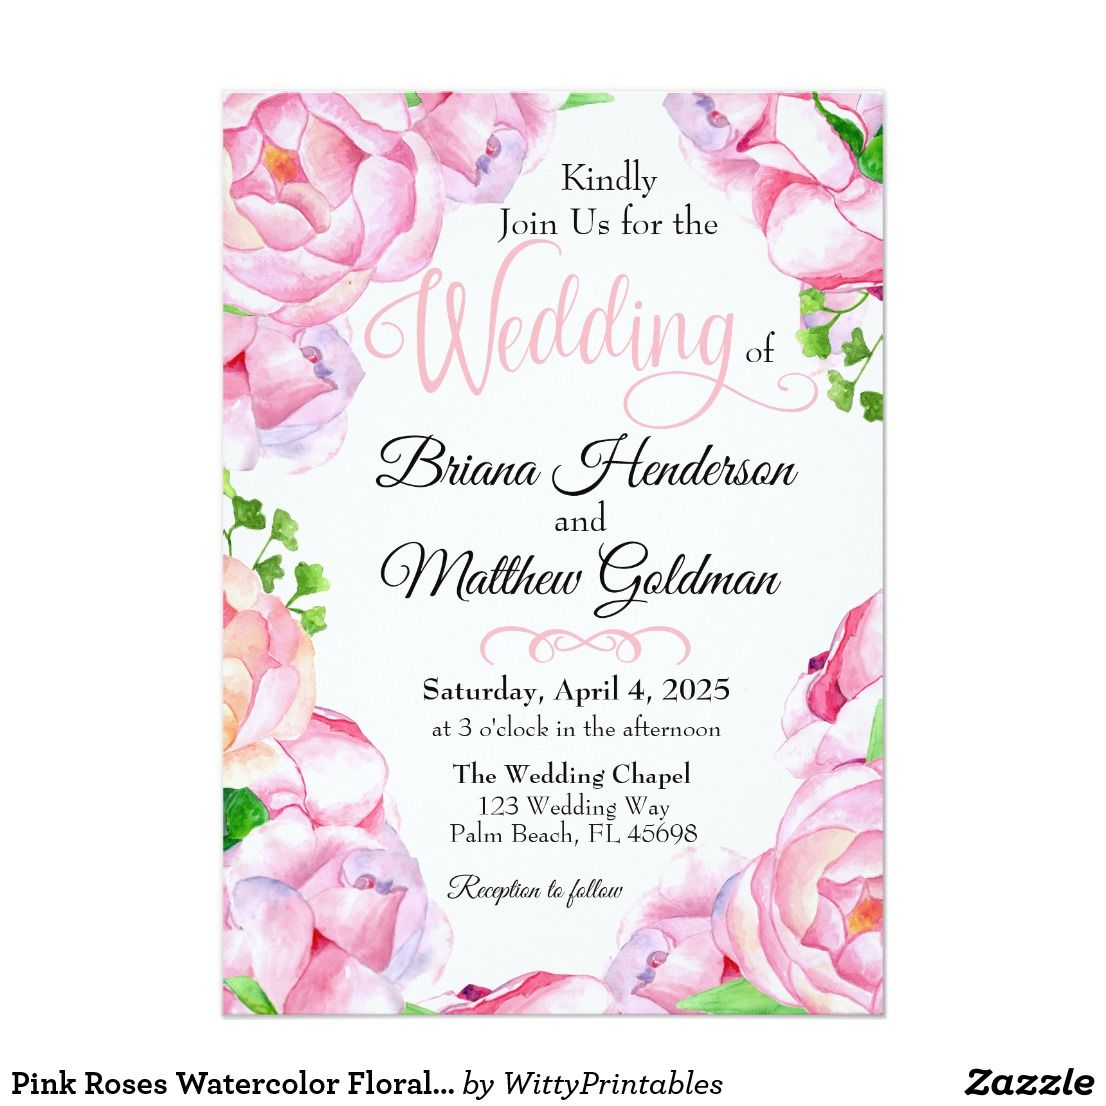 Pink Roses Watercolor Floral Wedding Invitation Floral Wedding And